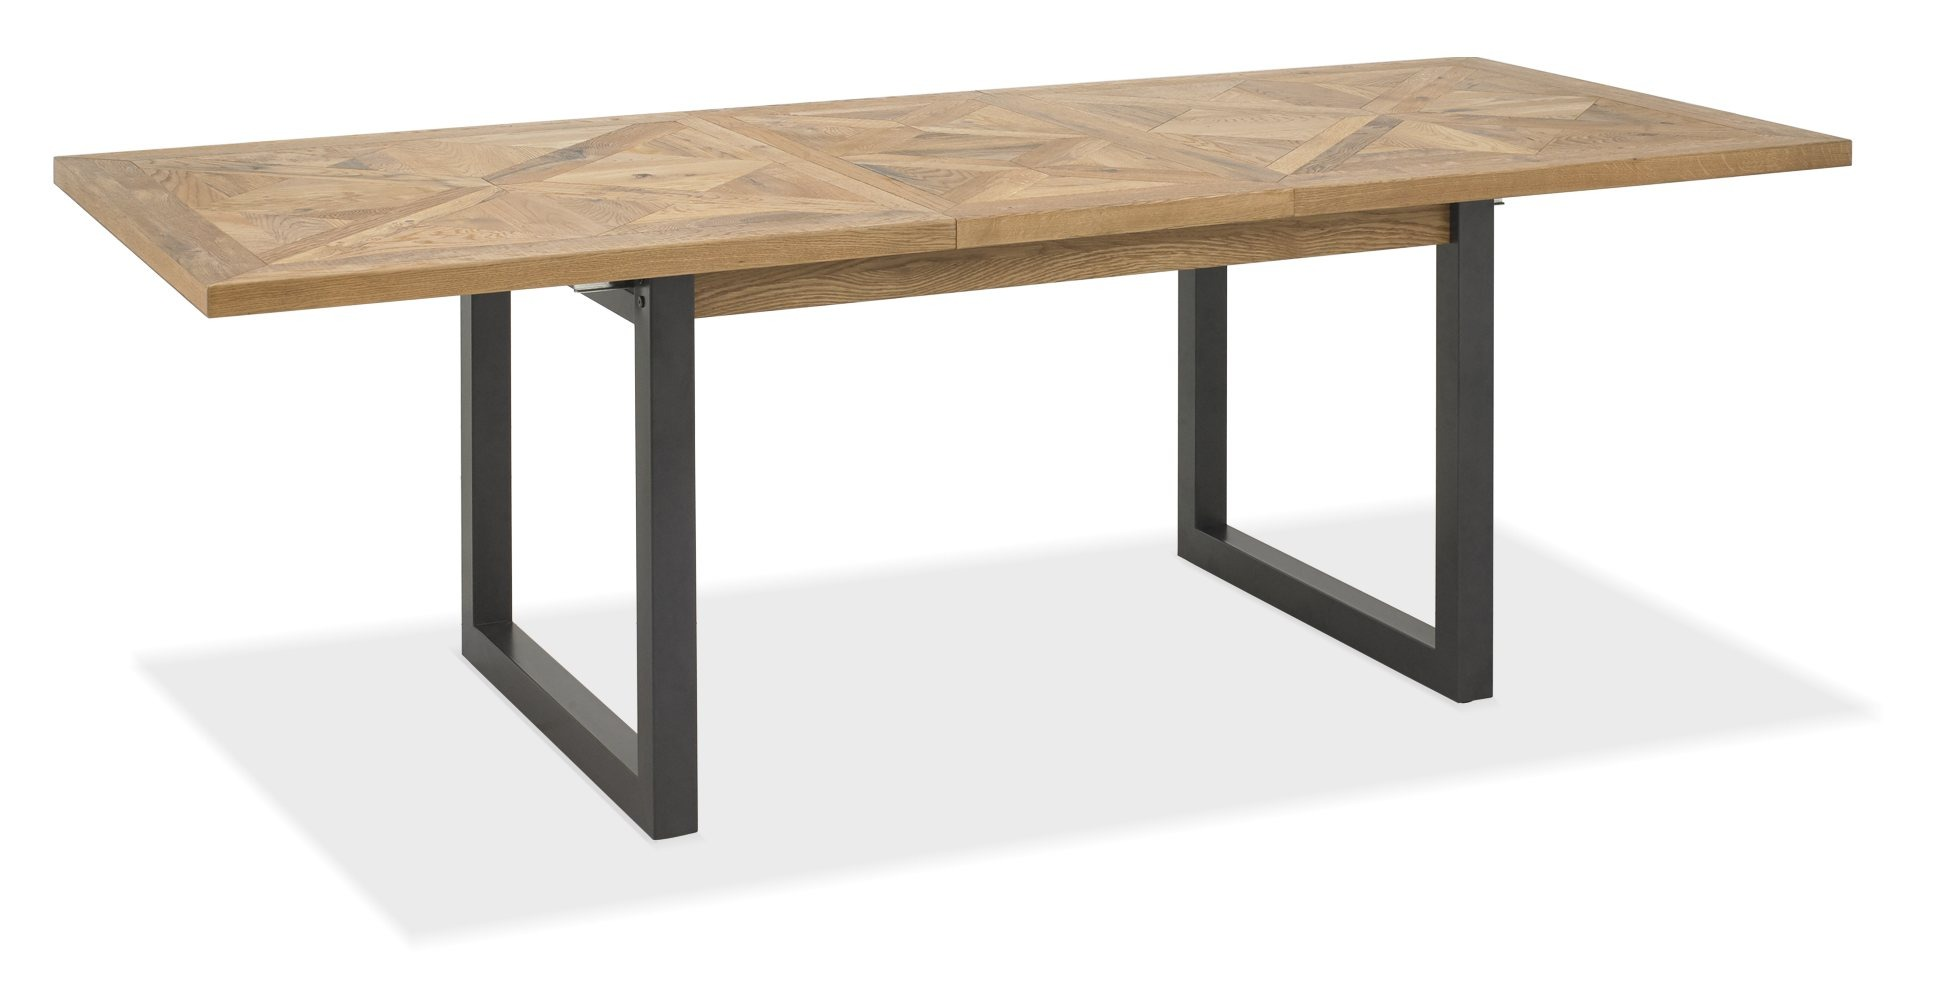 HELIX LARGE TABLE EXTENDED L240cm x D100cm x H77cm